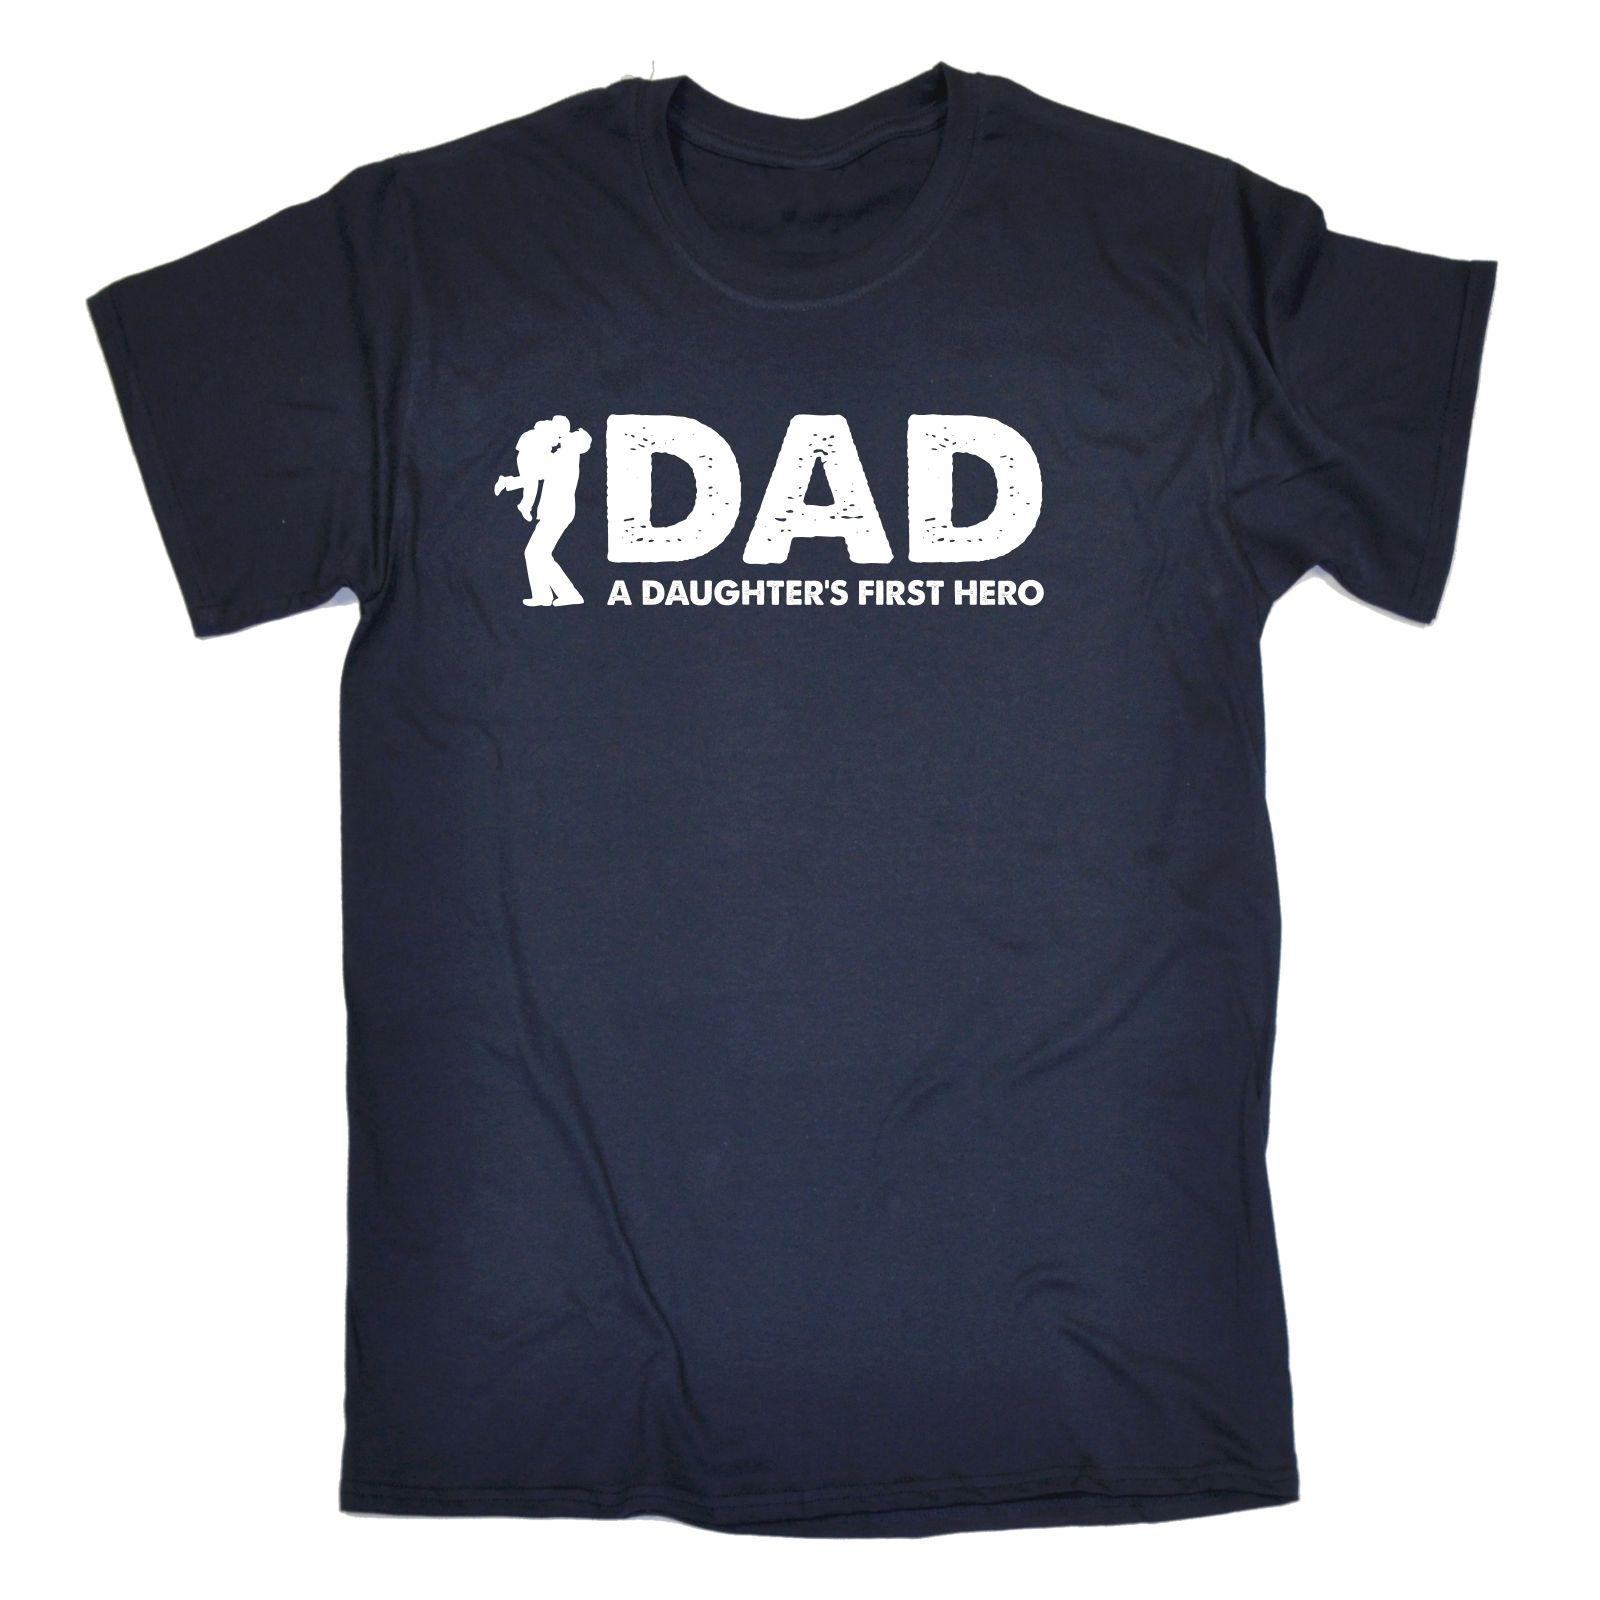 Dad A Daughters First Hero T SHIRT For Him Daughter Present Birthday Funny Gift Casual Tee Awesome Shirts Teet From Fatcuckoo